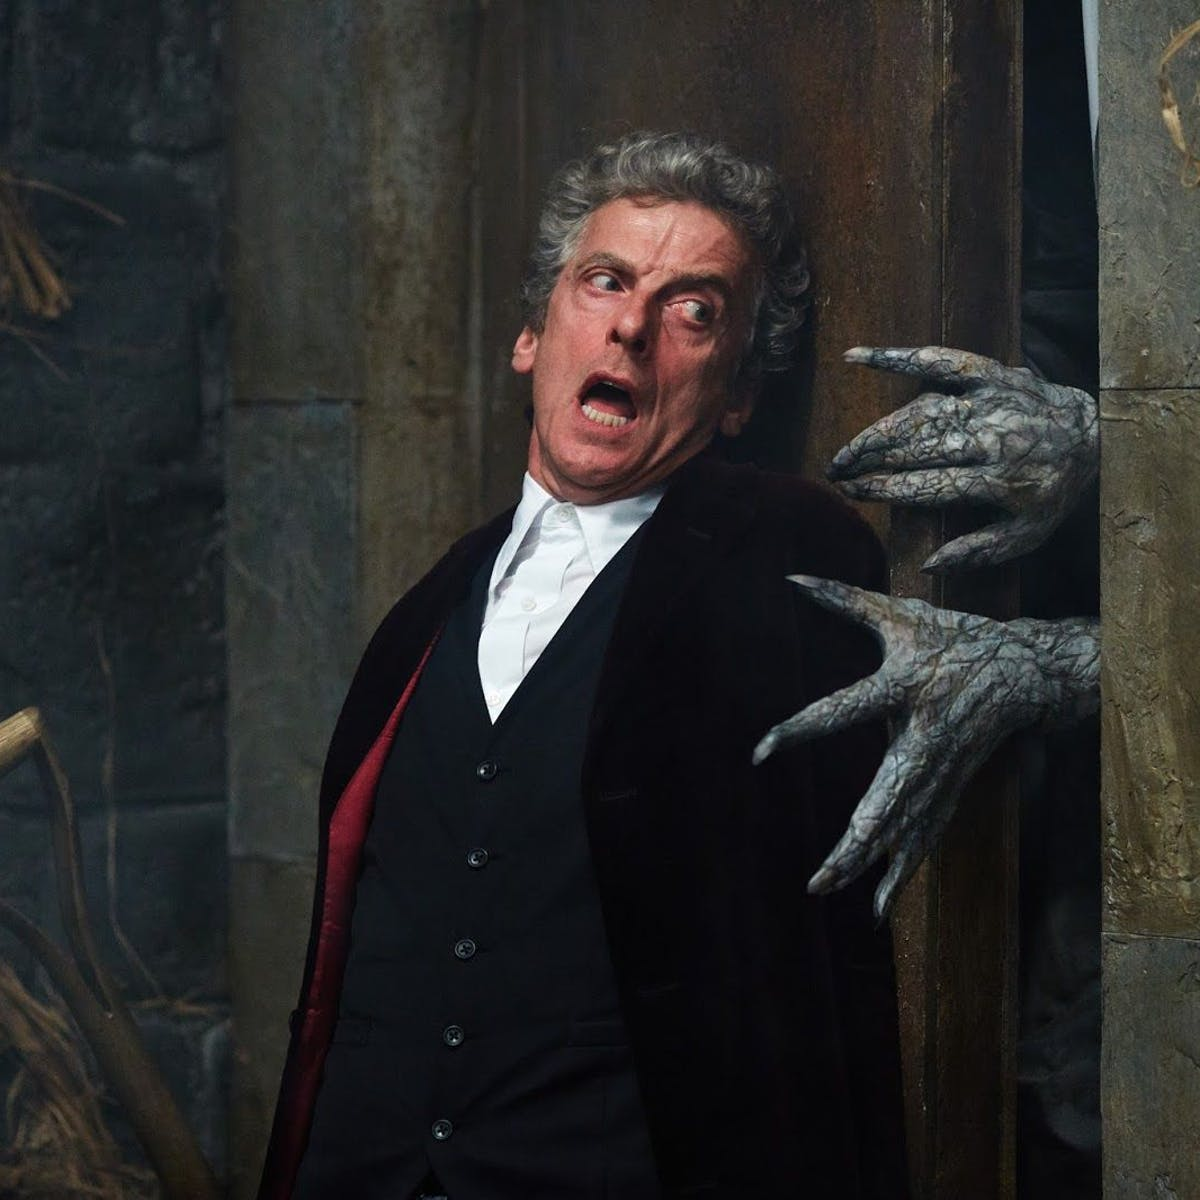 The 5 scariest 'Doctor Who' episodes have nothing to do with Weeping Angels